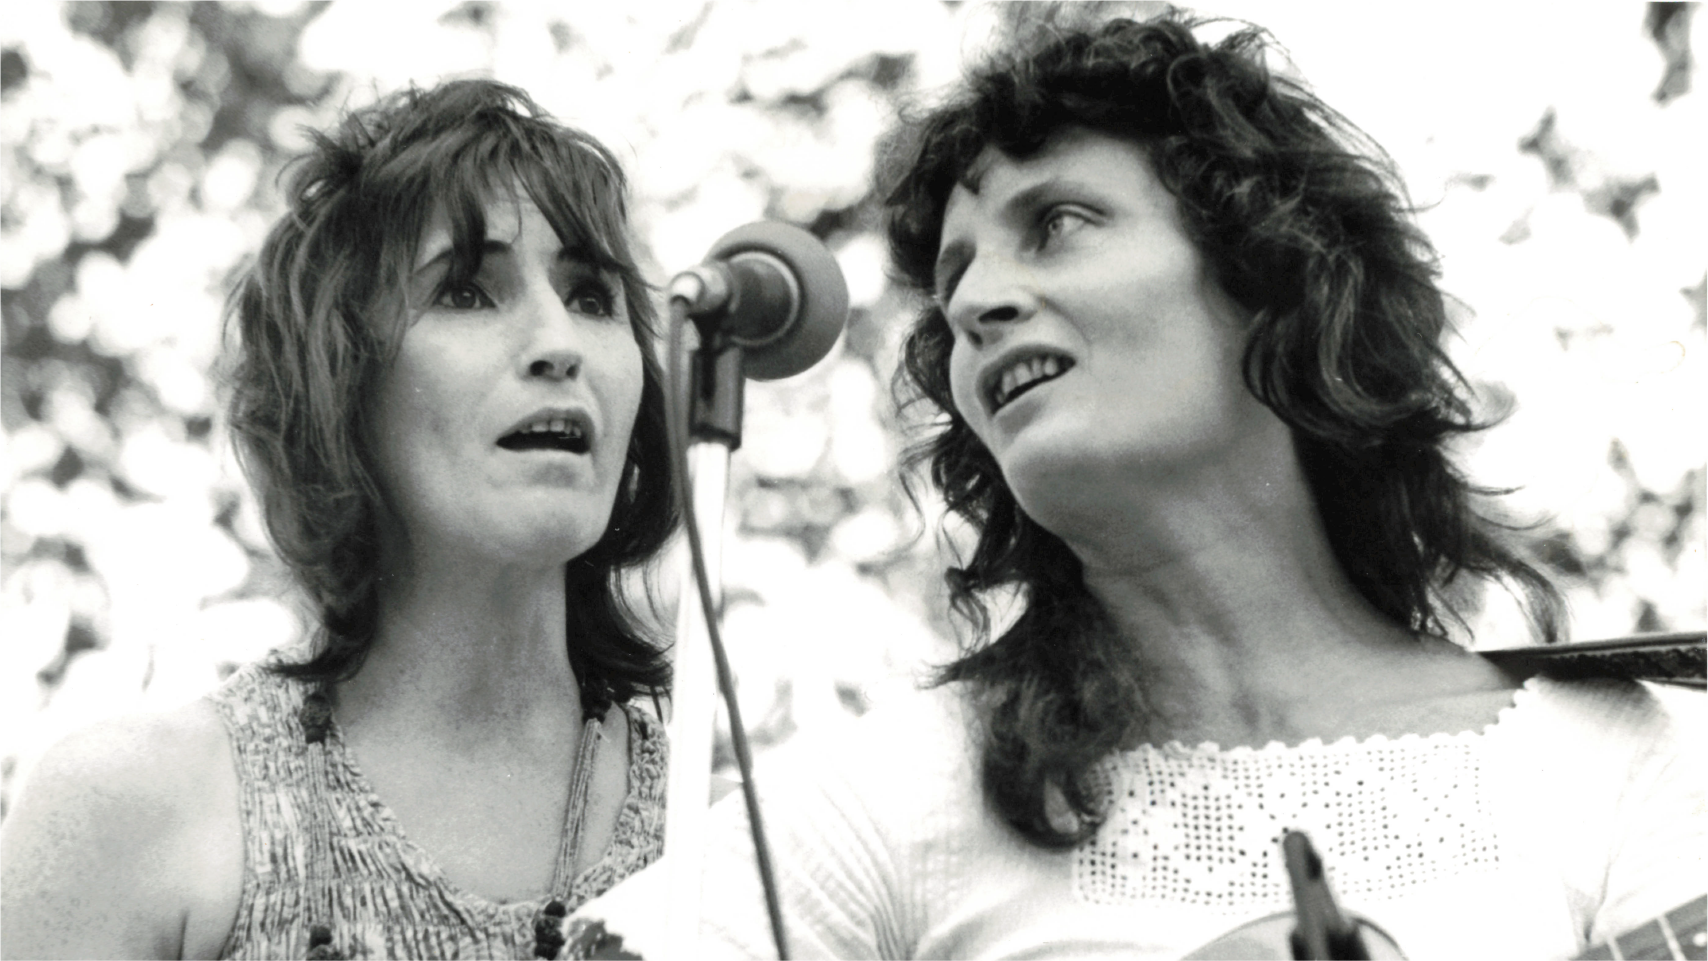 Won't You Come and Sing for Me? The Music of Hazel and Alice (Folk Legacy Series), Oct. 14